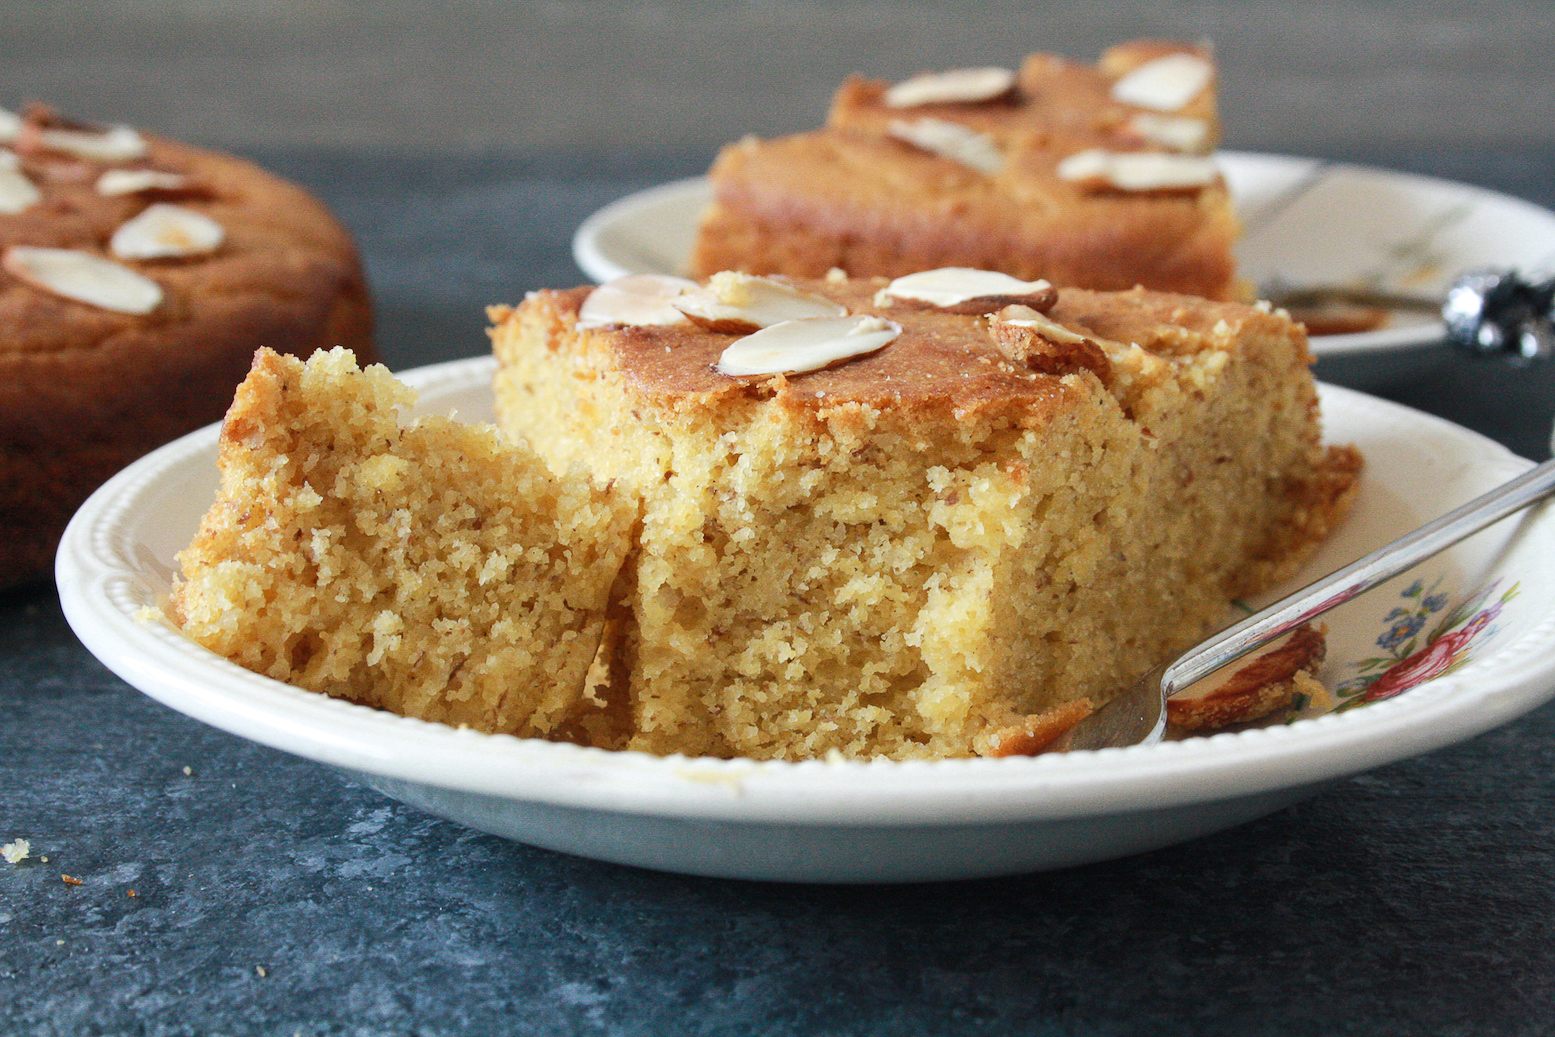 A gluten-free, super flavourful cake made with ground almonds and cornmeal!